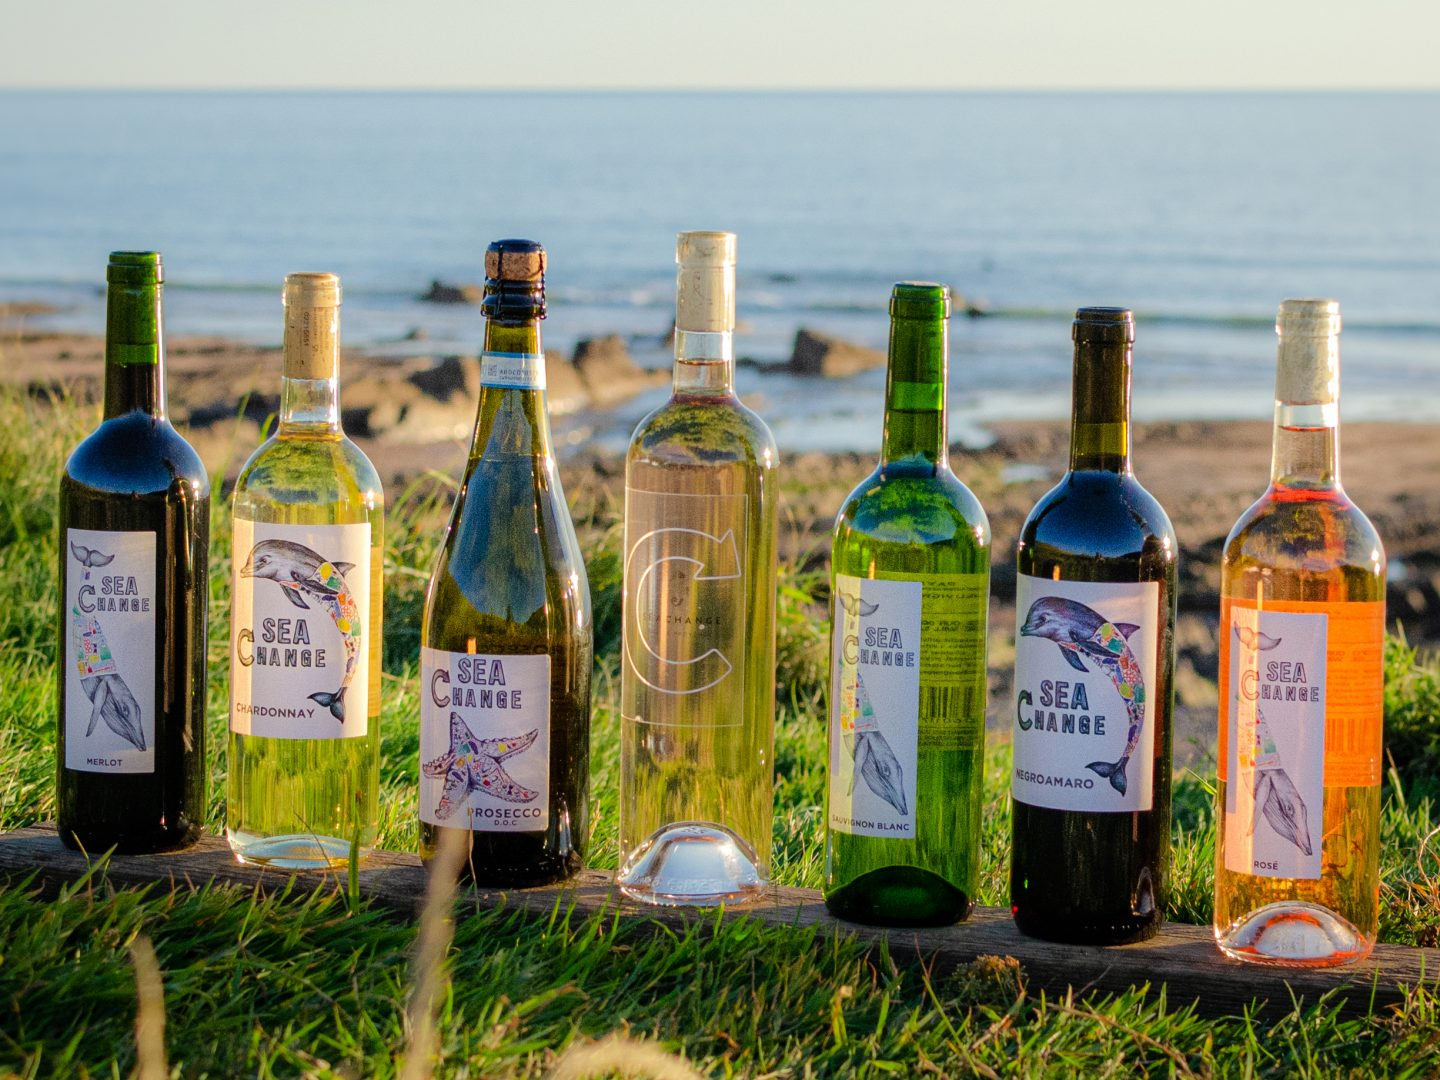 Sea Change Wine bottles lined up with sea in background